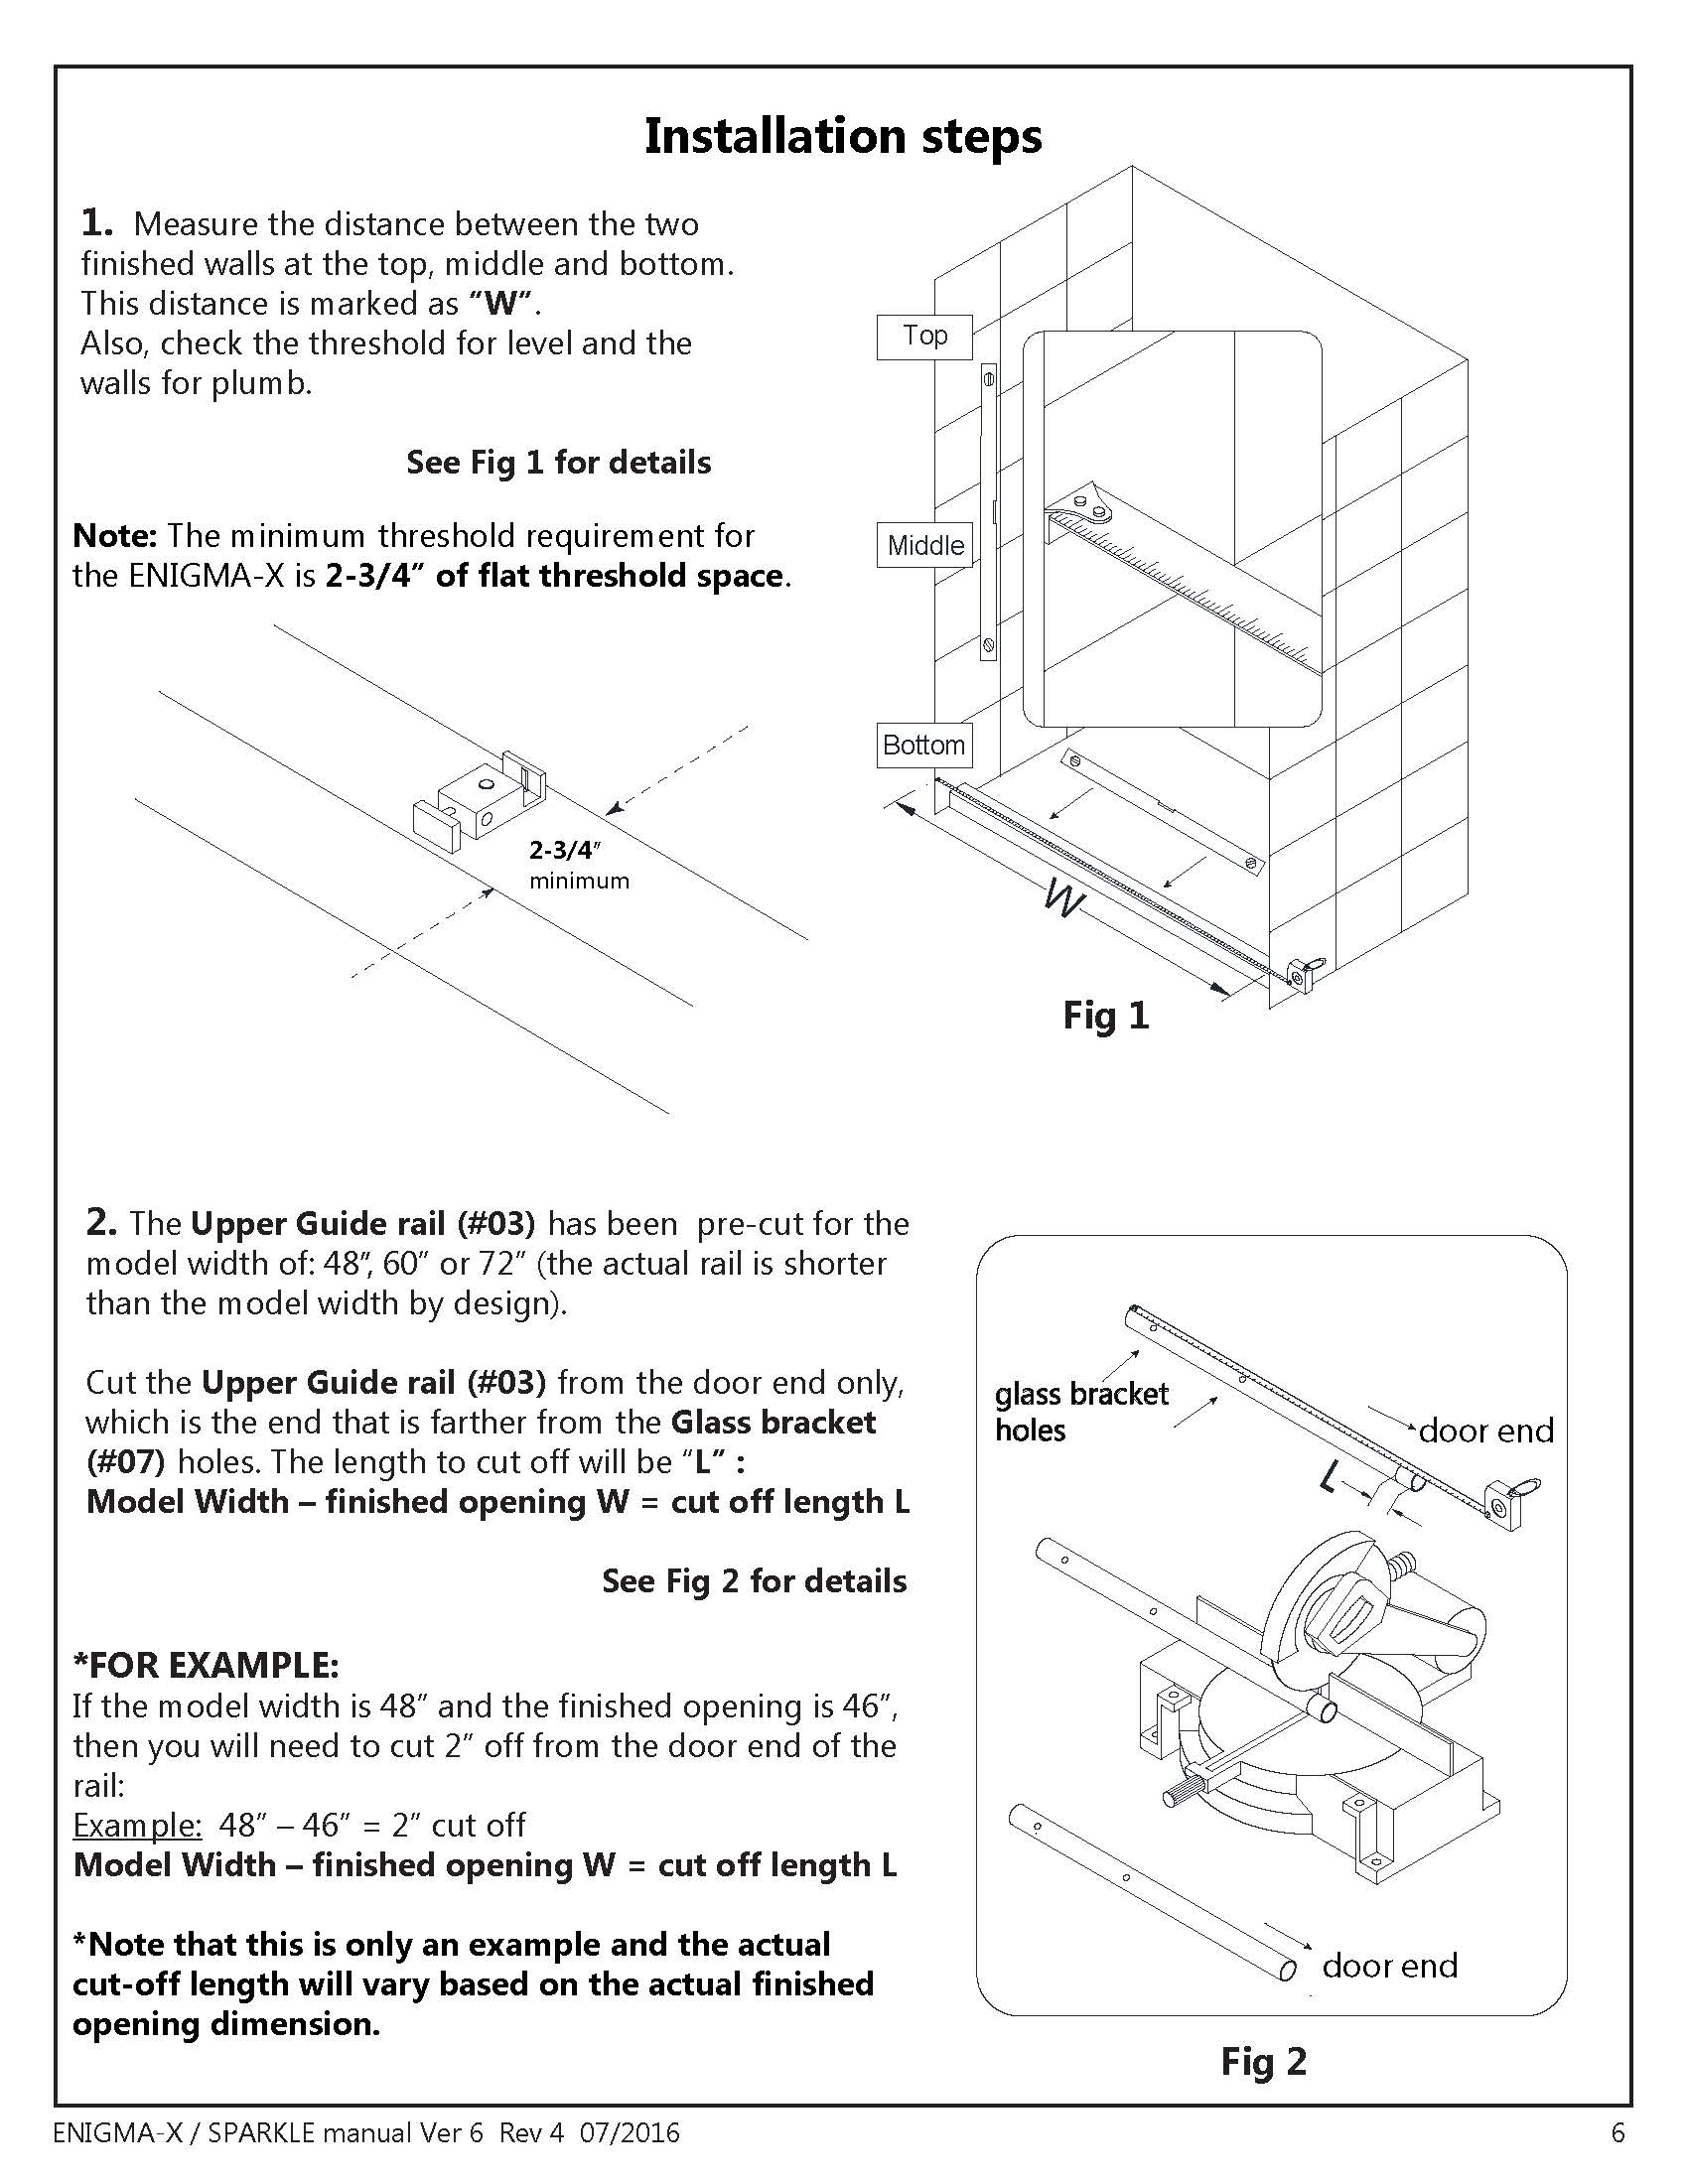 DreamLine Enigma X glass shower door Install manual - Installation Steps